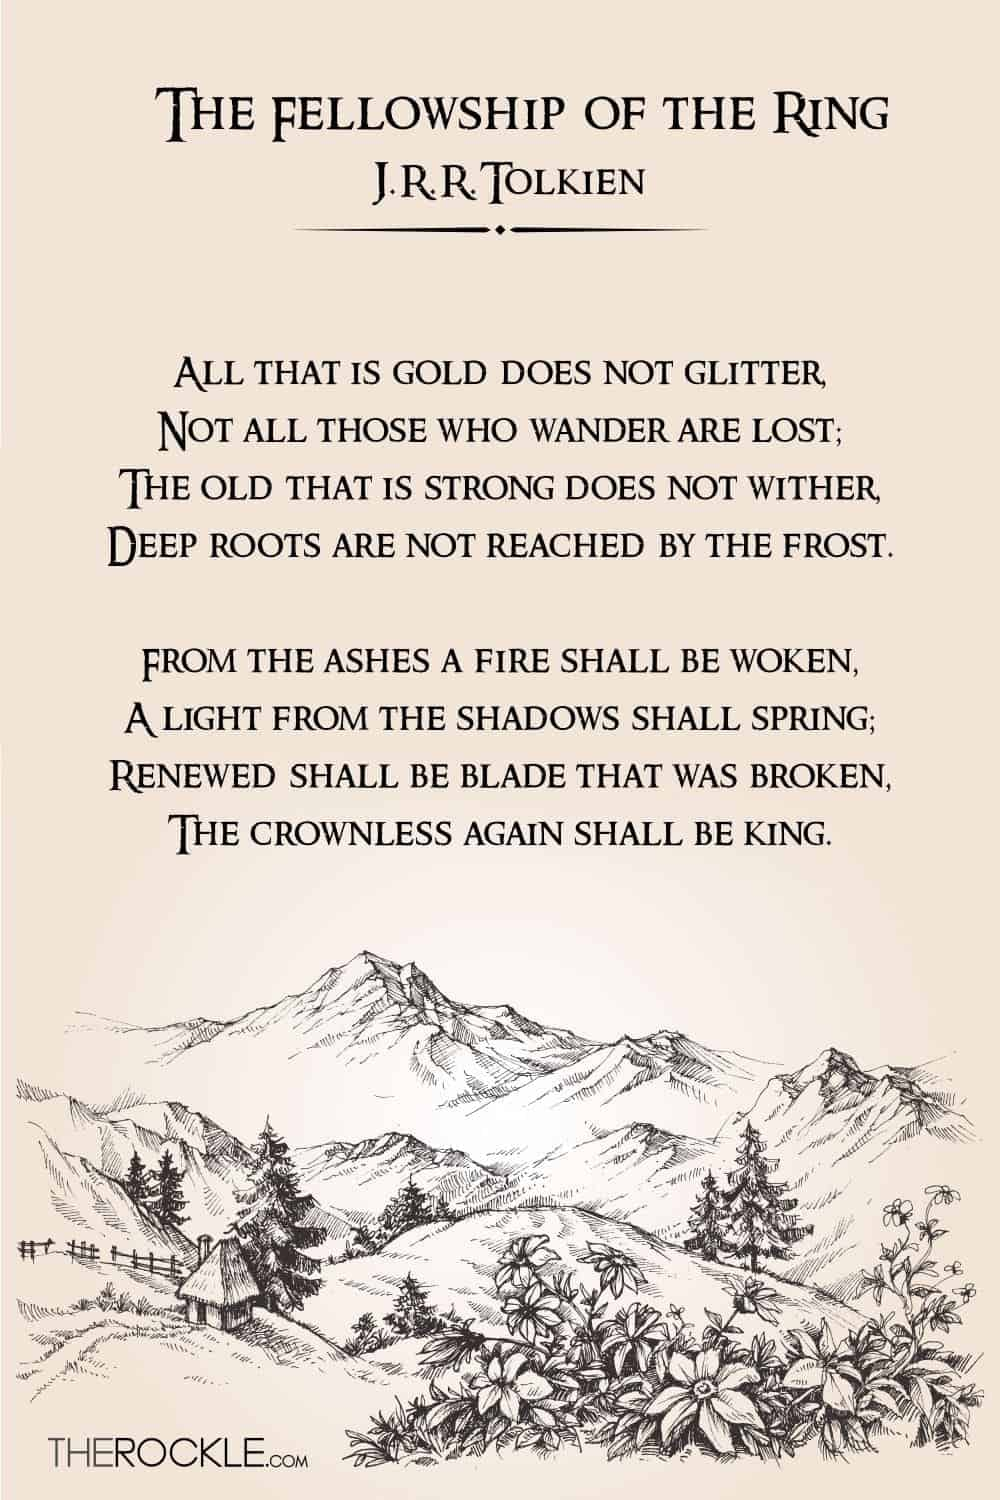 J.R.R. Tolkien best quotes from The Fellowship of the Ring: All that is gold does not glitter, Not all those who wander are lost;